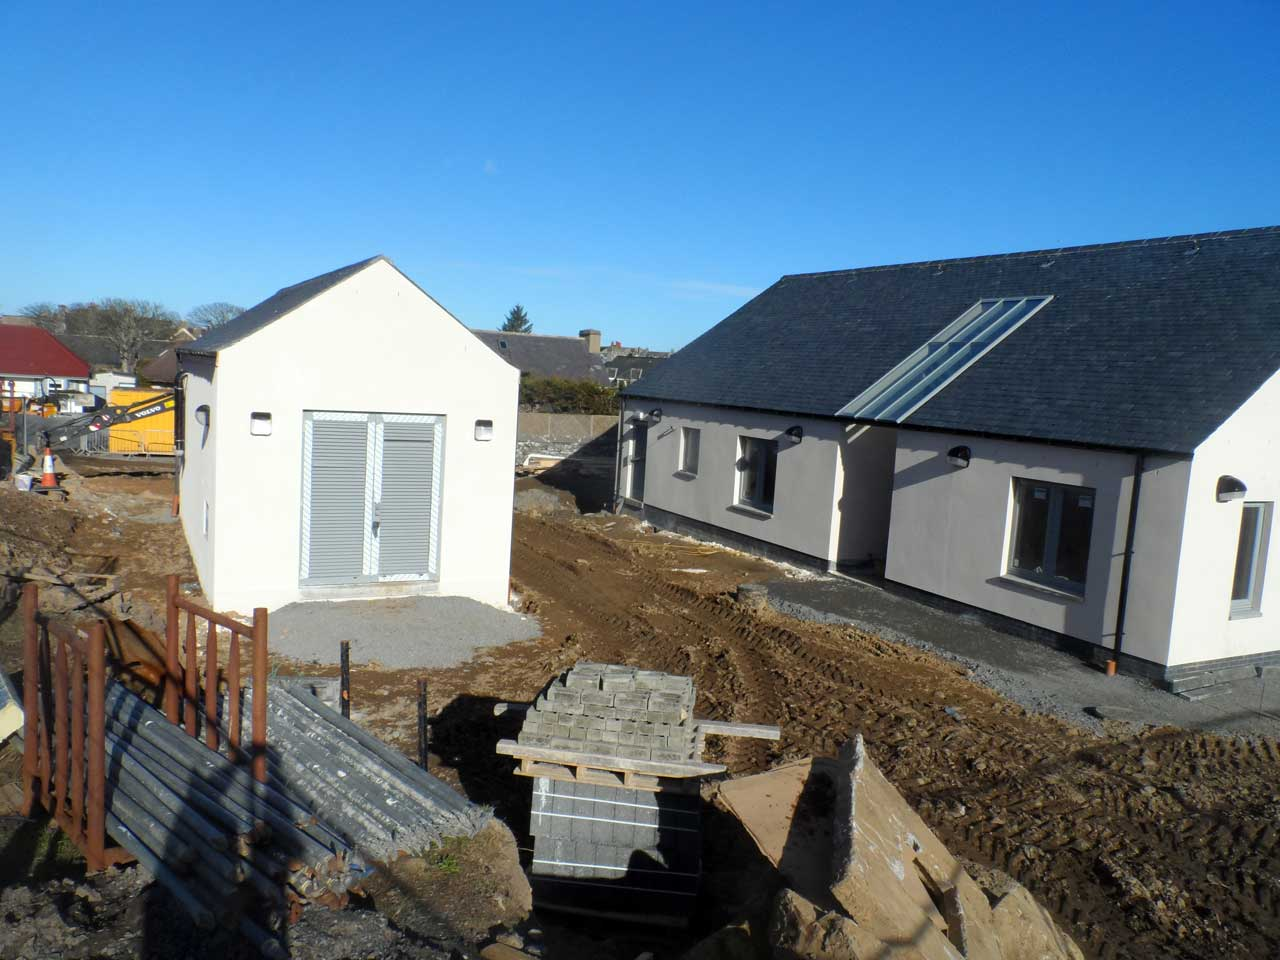 Photo: New Children's Home In Wick 1 March 2014